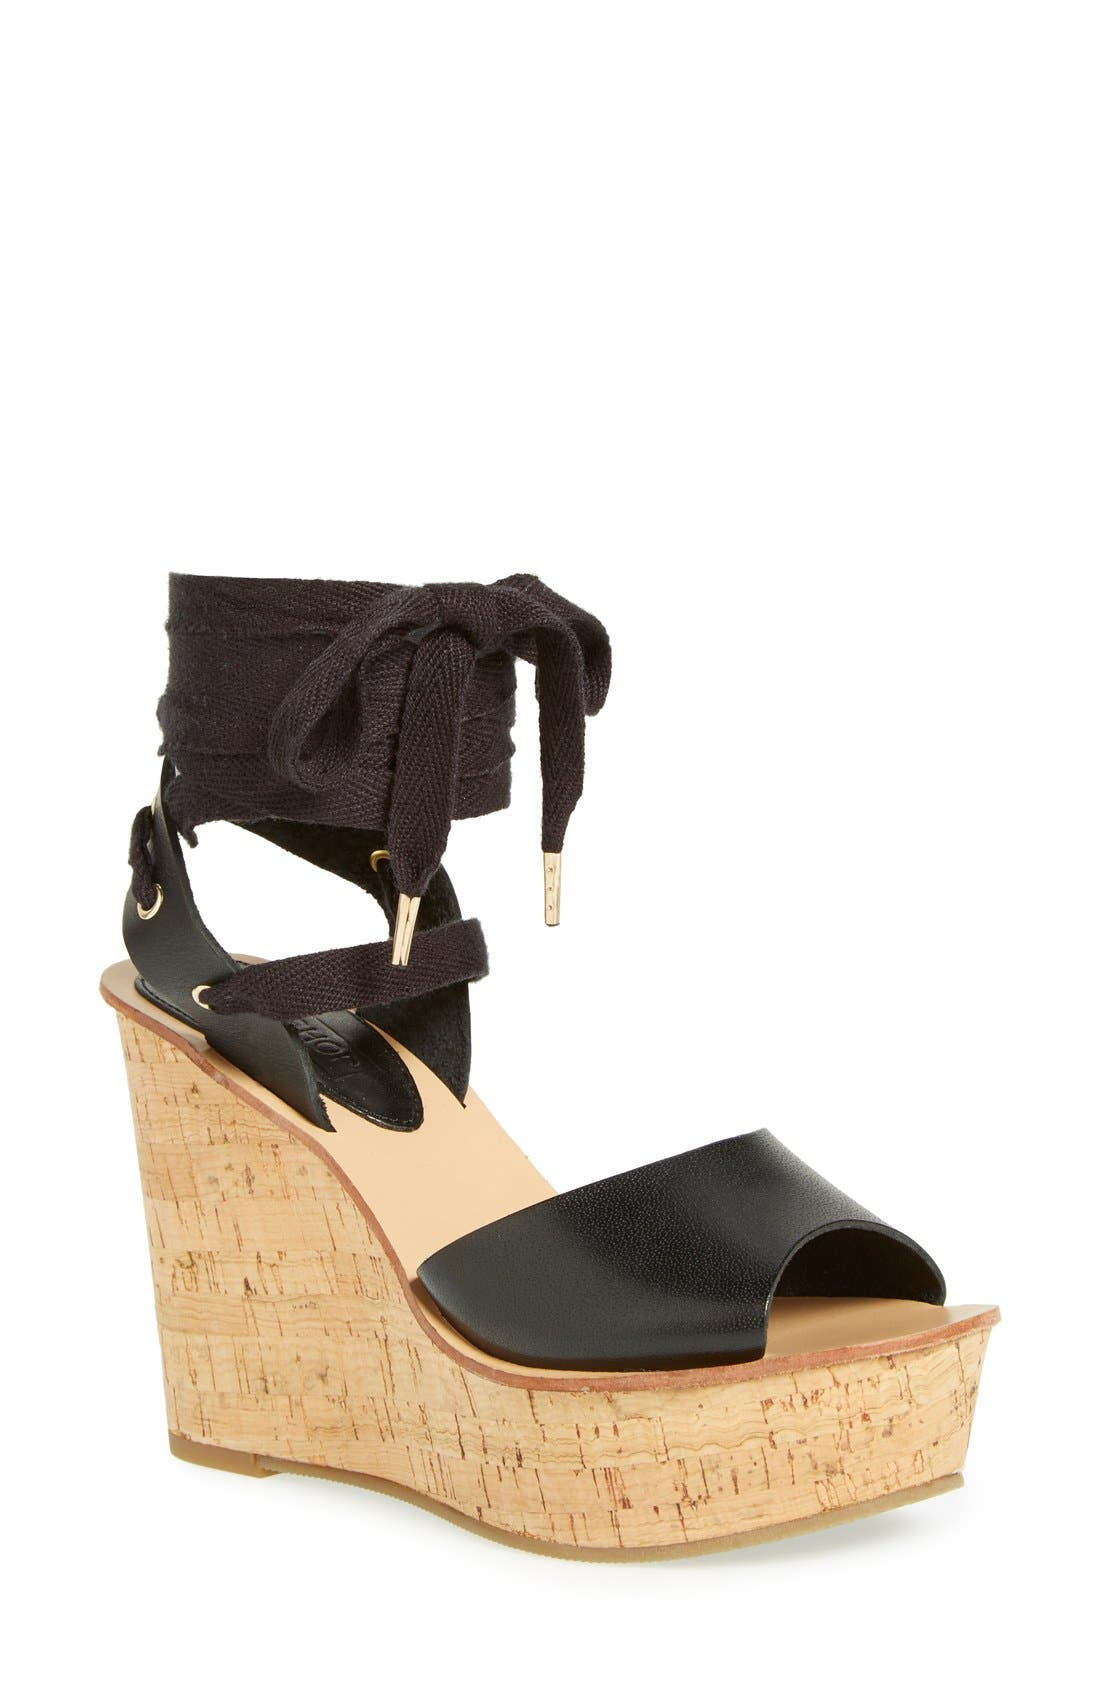 TOPSHOP, 'Wise' Platform Wedge Sandal, Main thumbnail 1, color, 001